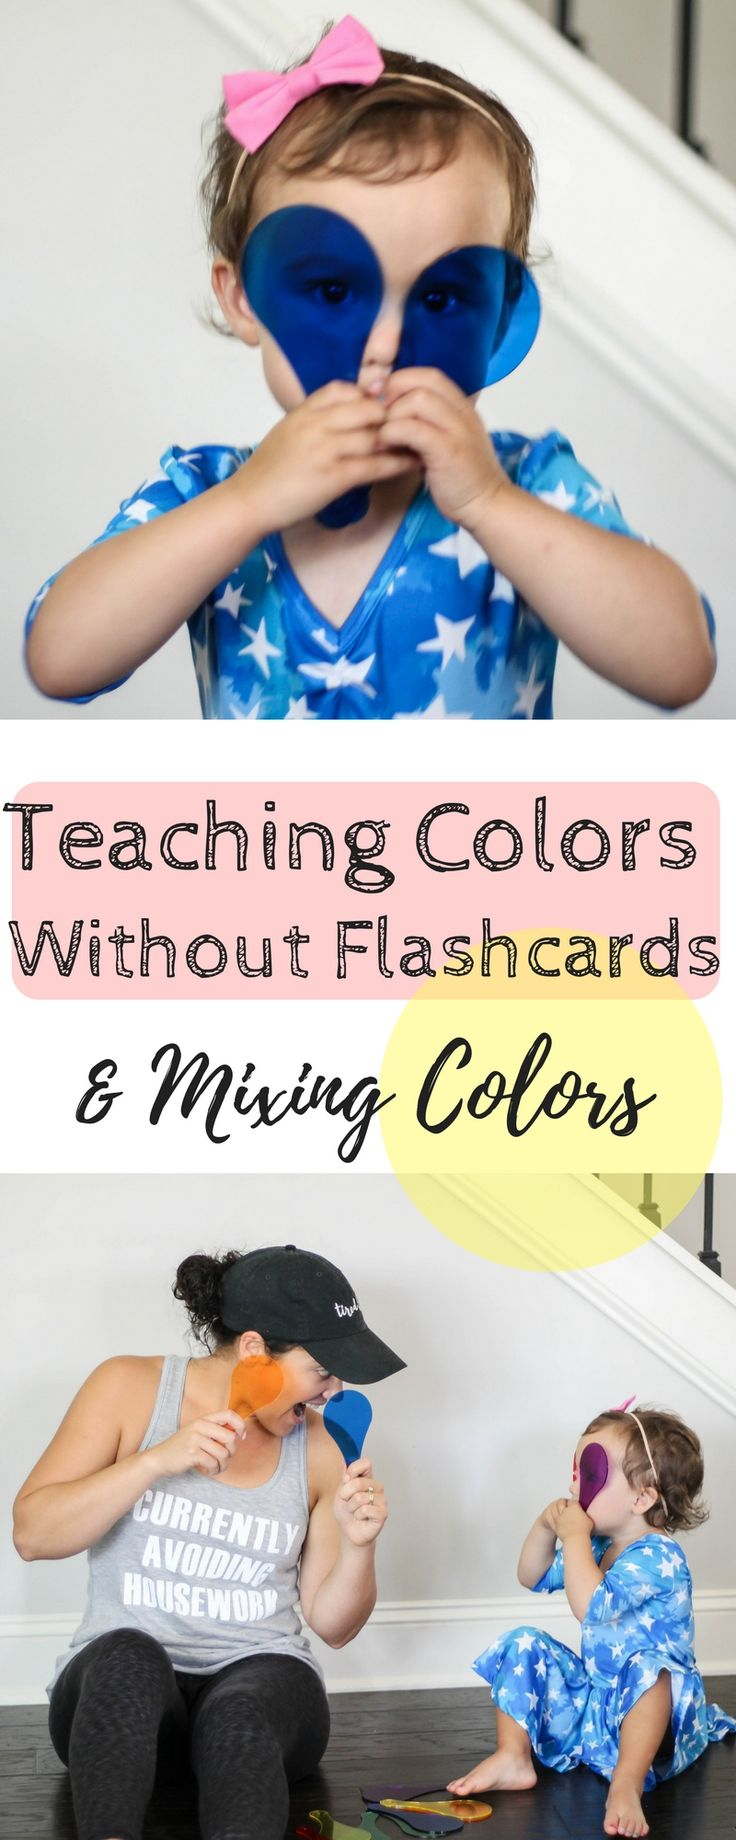 Teaching Colors without Flashcards | Homeschooling | Preschool | Toddler Education | Educational Games | Mixing colors | Fun Educational Color Games and Activities | Home Schooling preschool | No Flashcards | Busy Little Izzy Blog